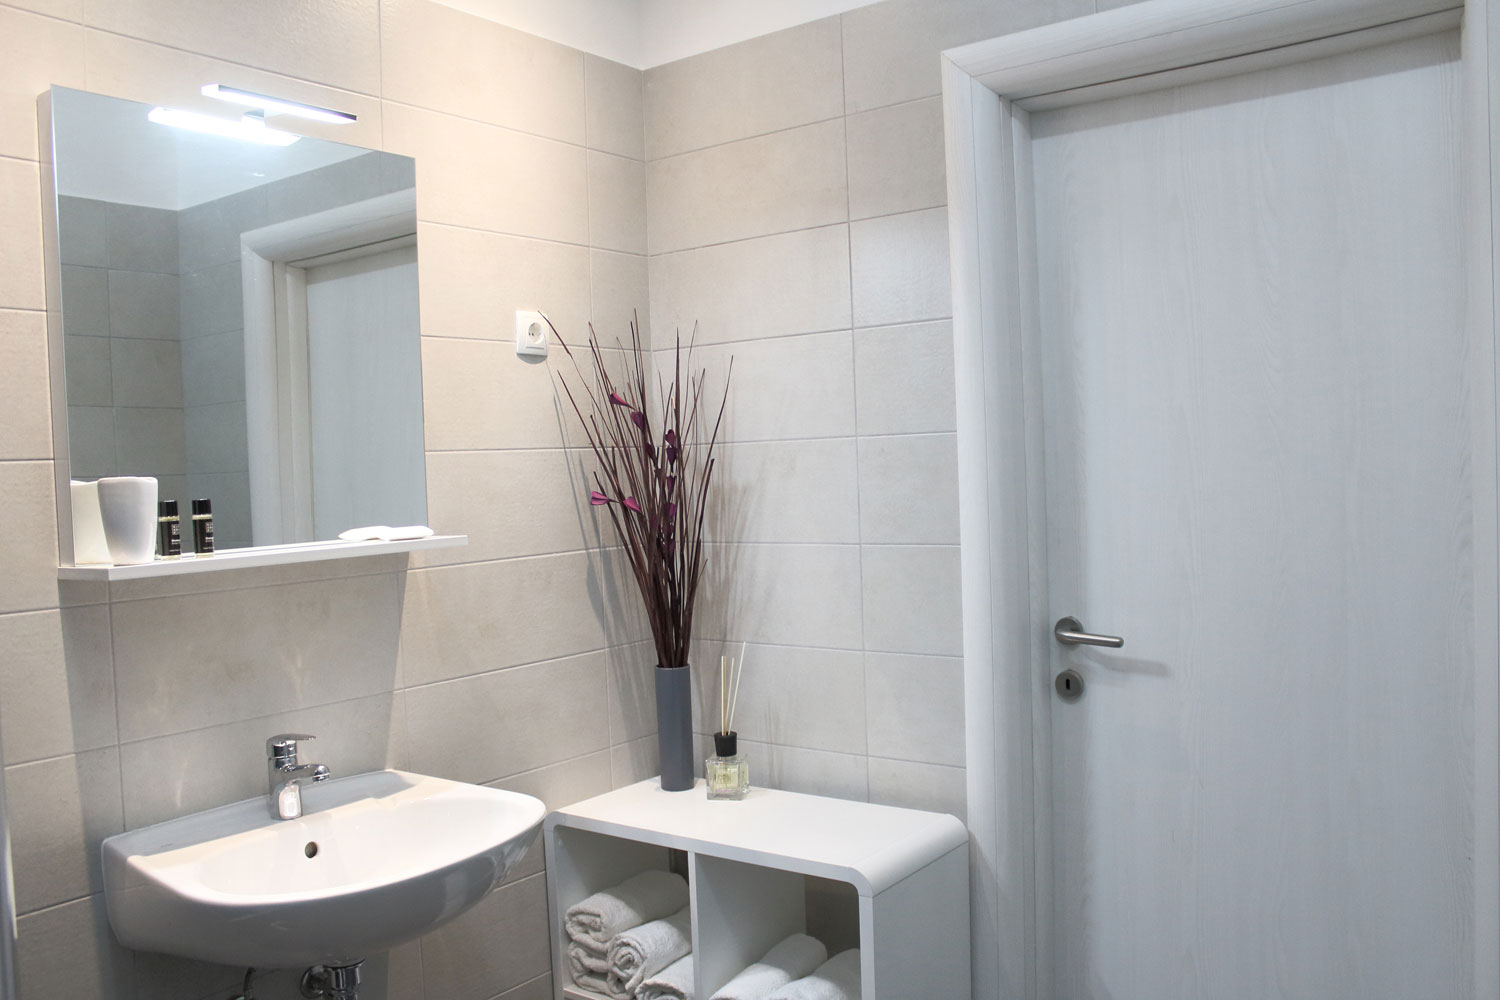 Apartments Basan Lovran-Opatija, apartment 4+1 bathroom